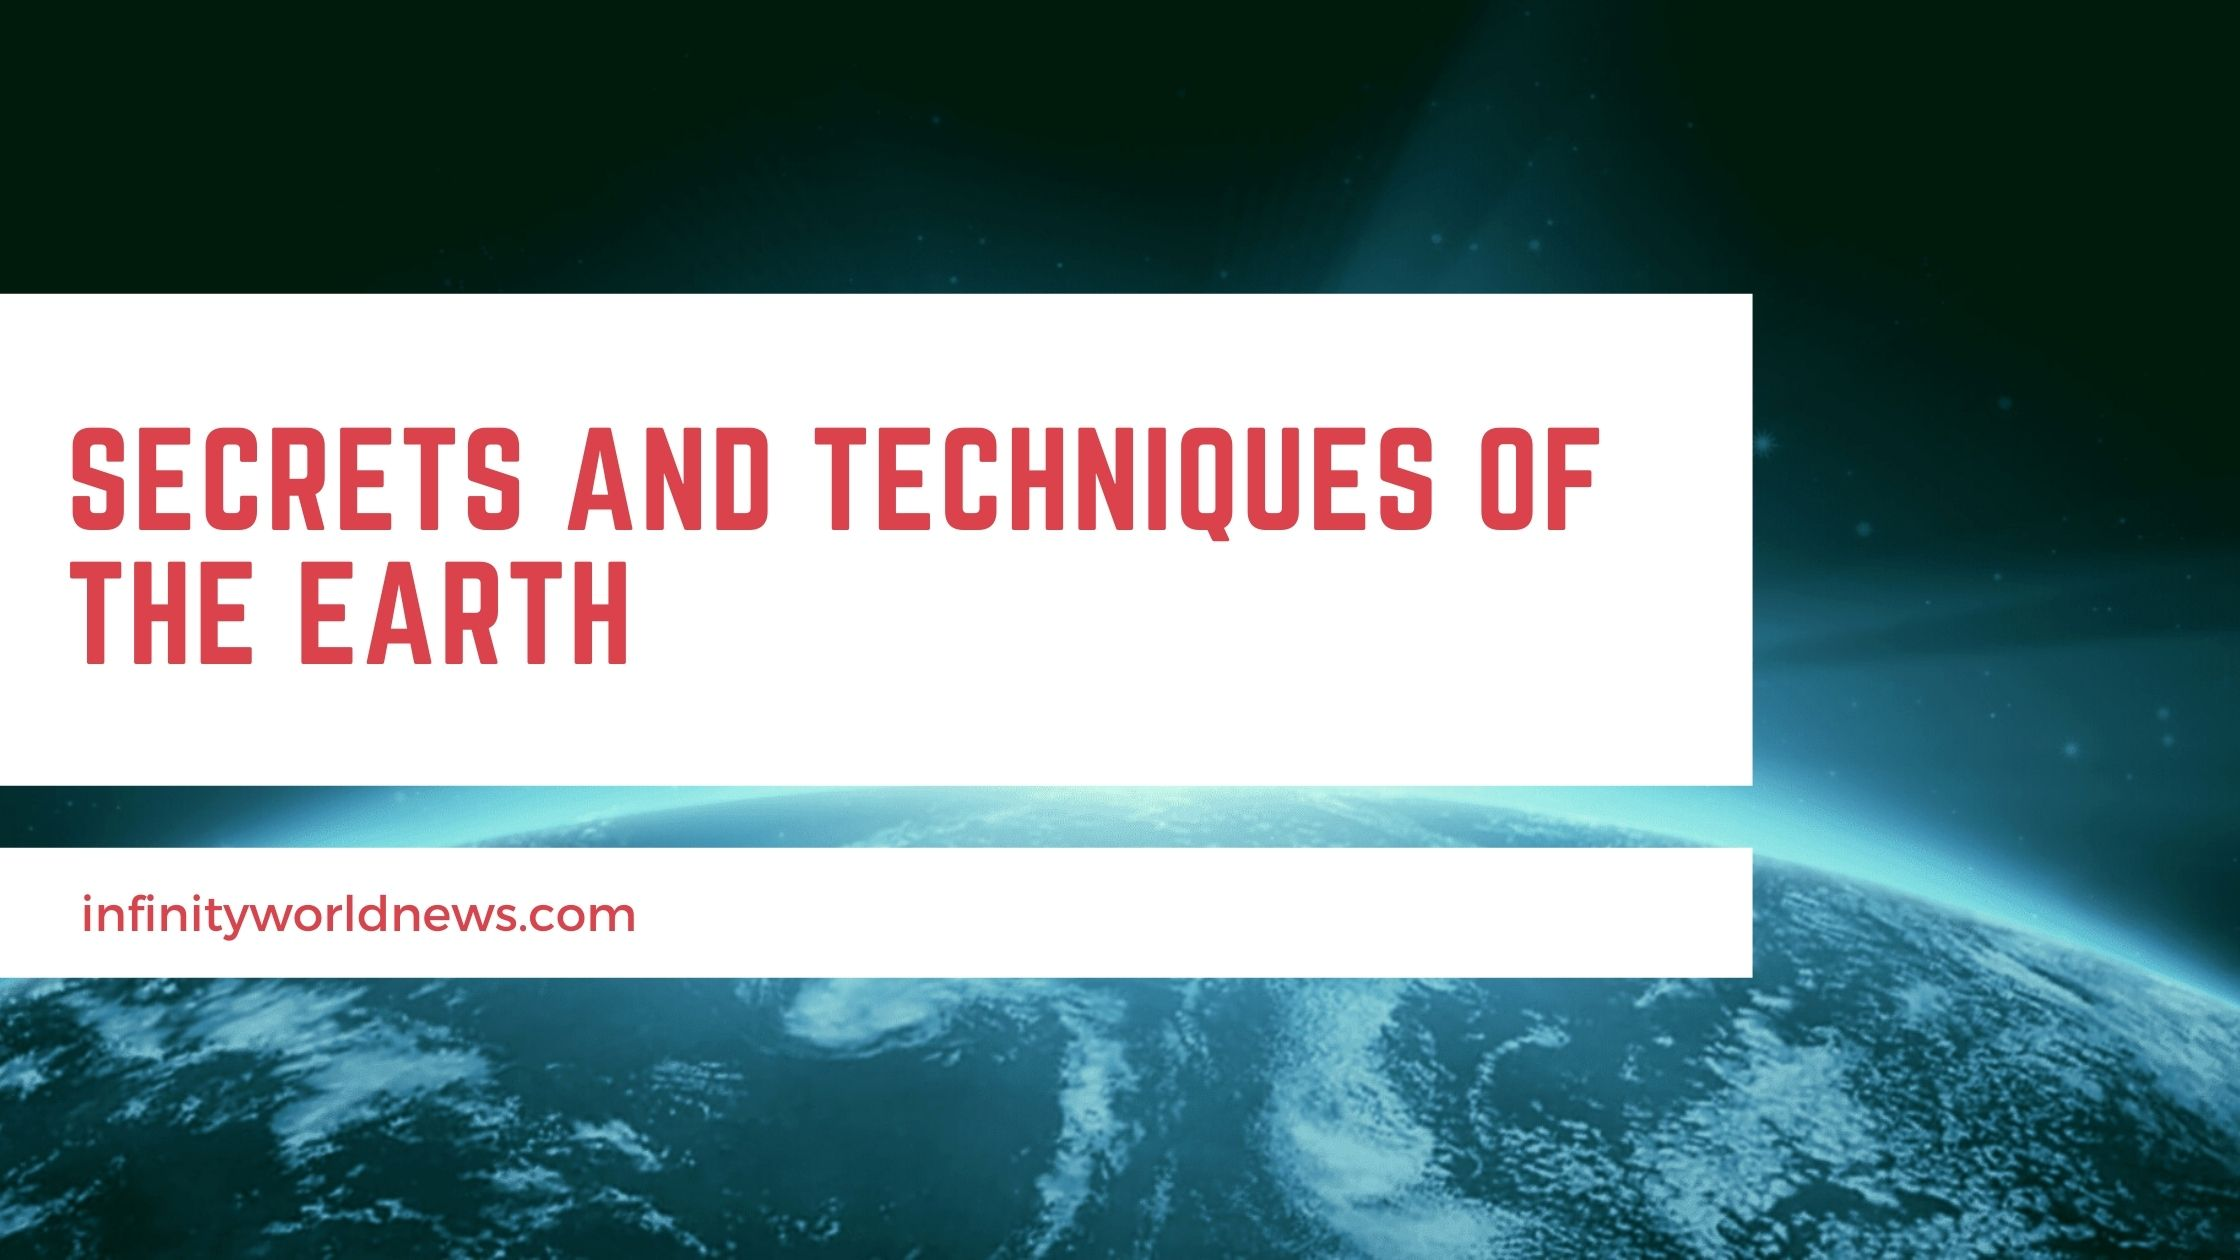 Secrets And techniques of the earth